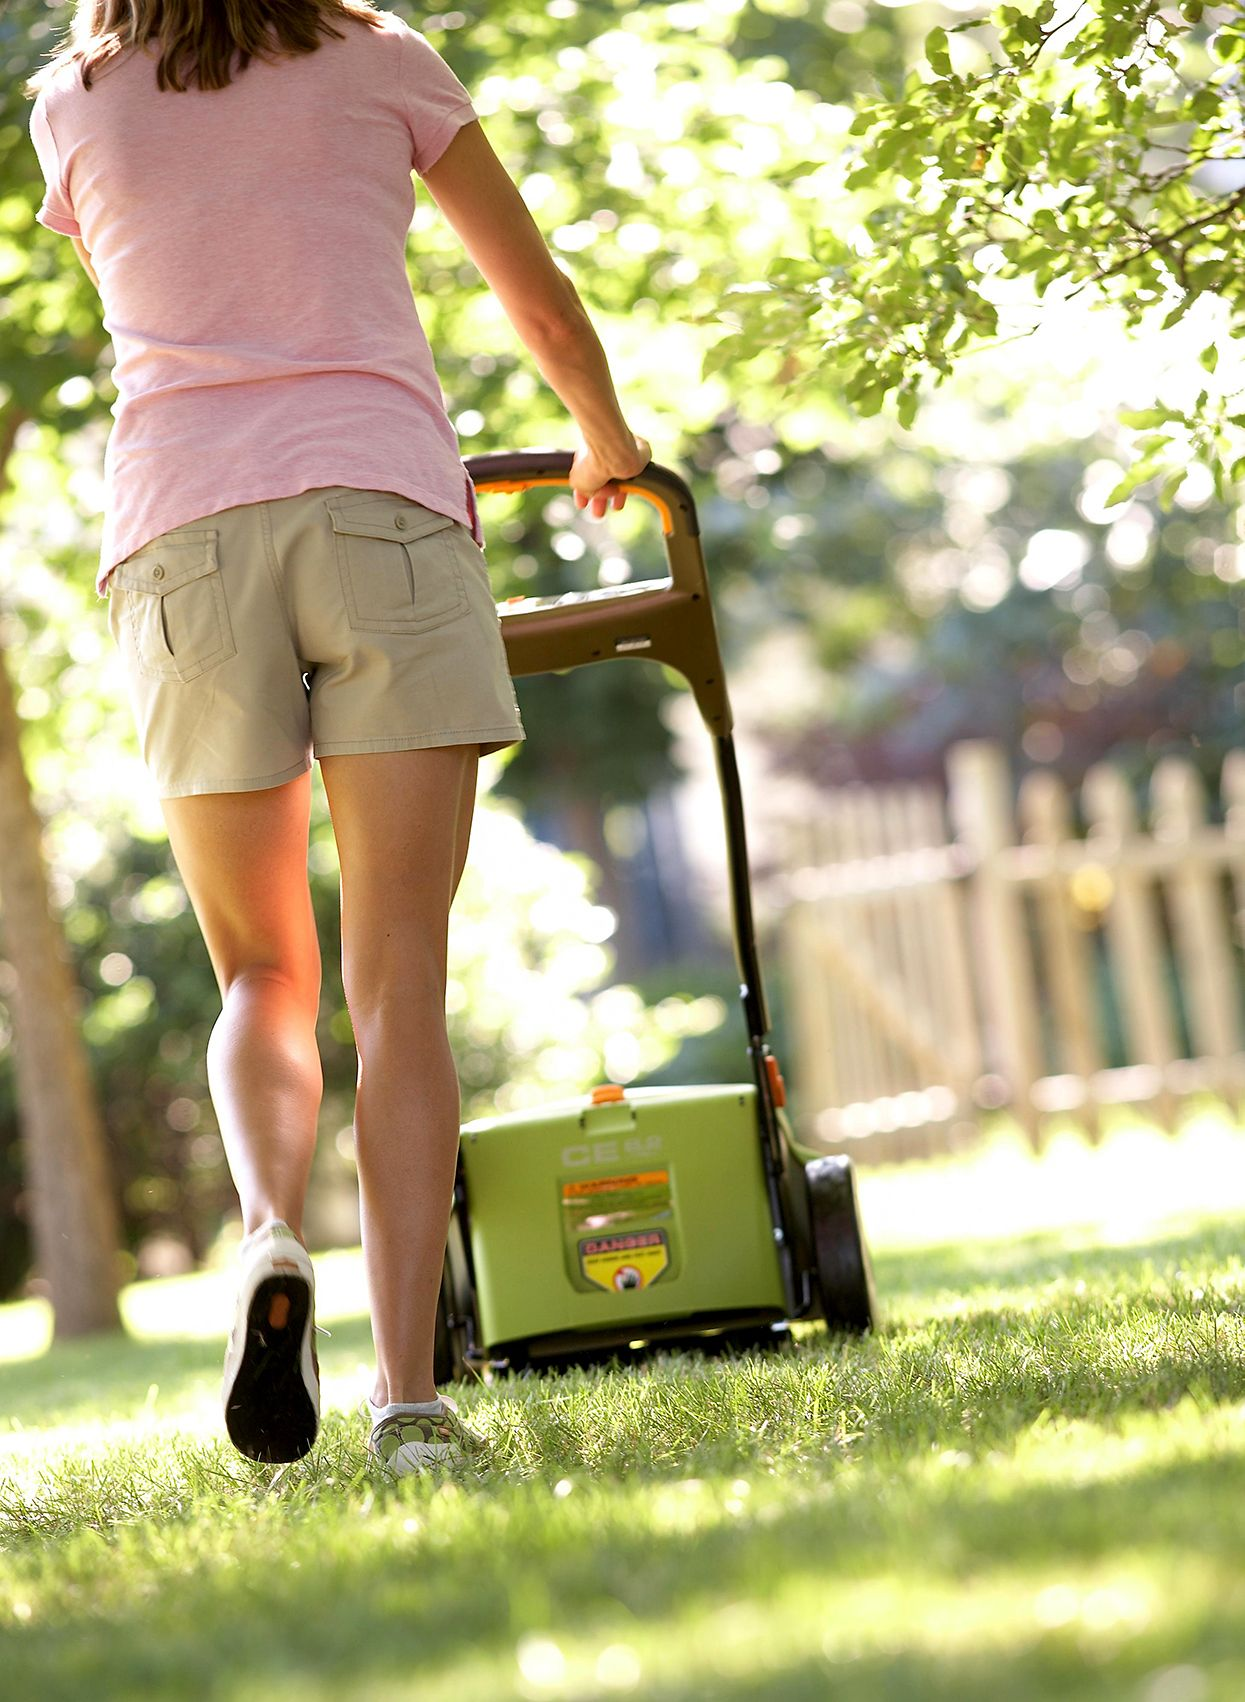 How to Find the Best Lawn Mower for You Lawn mower